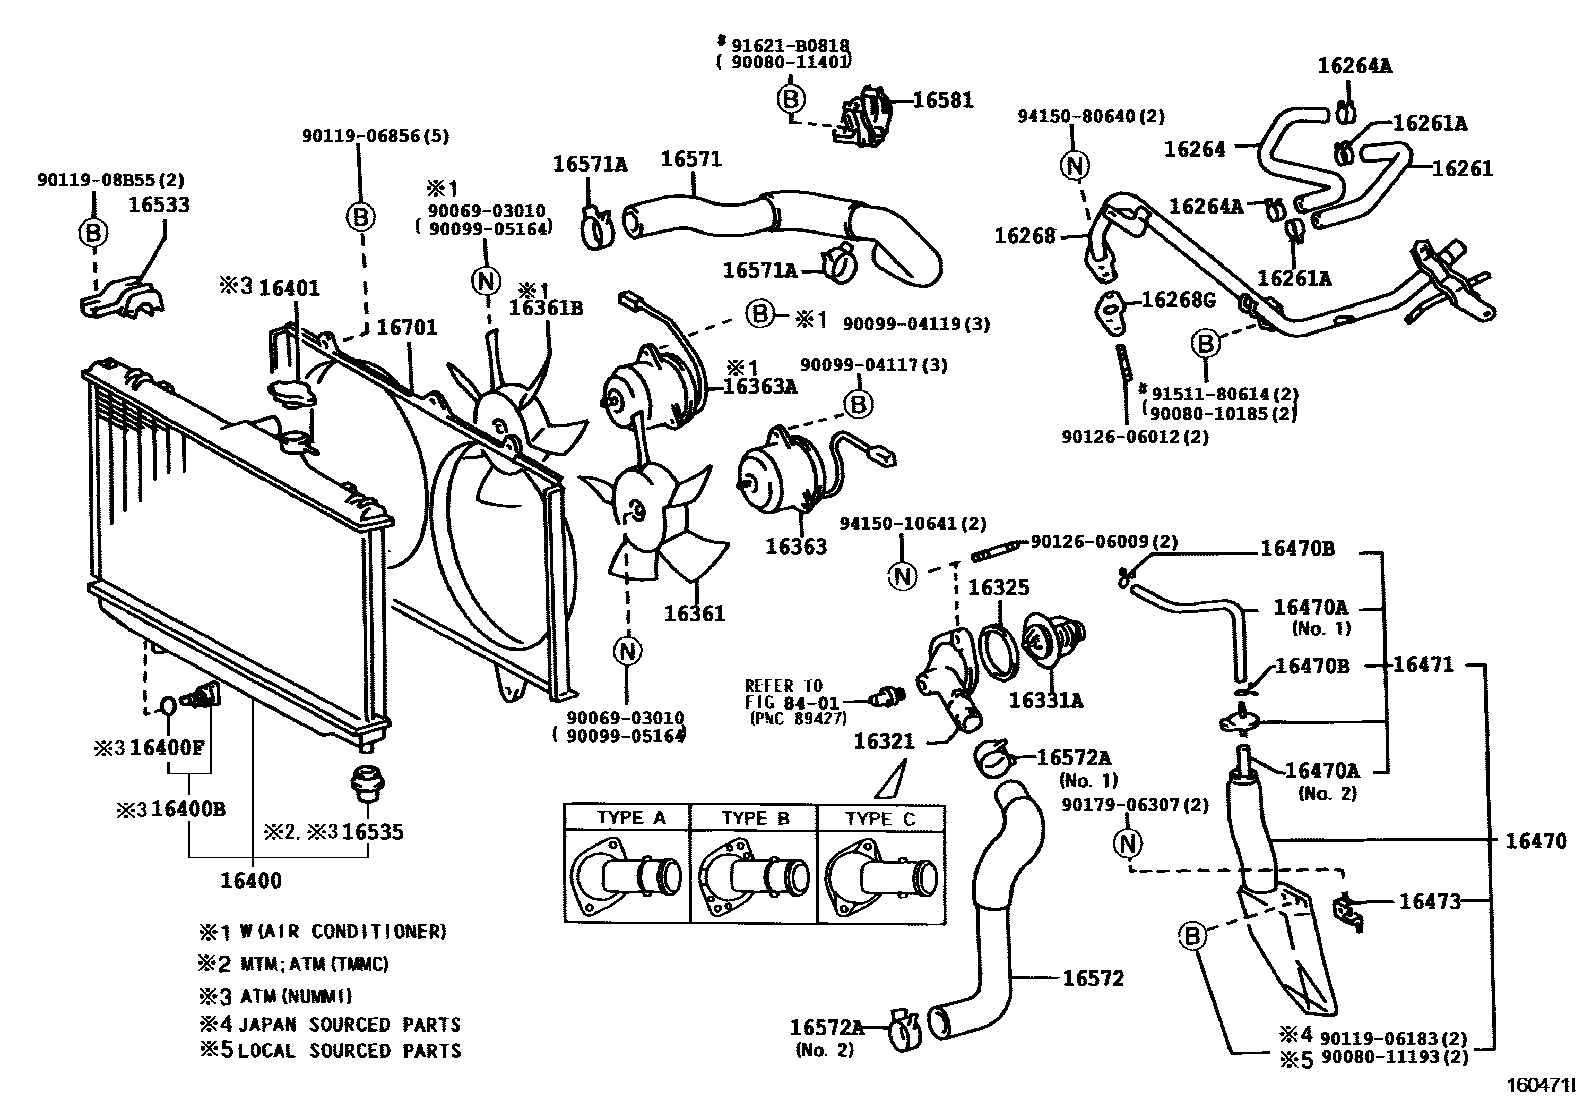 Corolla Diy 1998 Toyota Ve 1zzfe Zze110 Radiator And W Club Car Fuel Pump Diagram